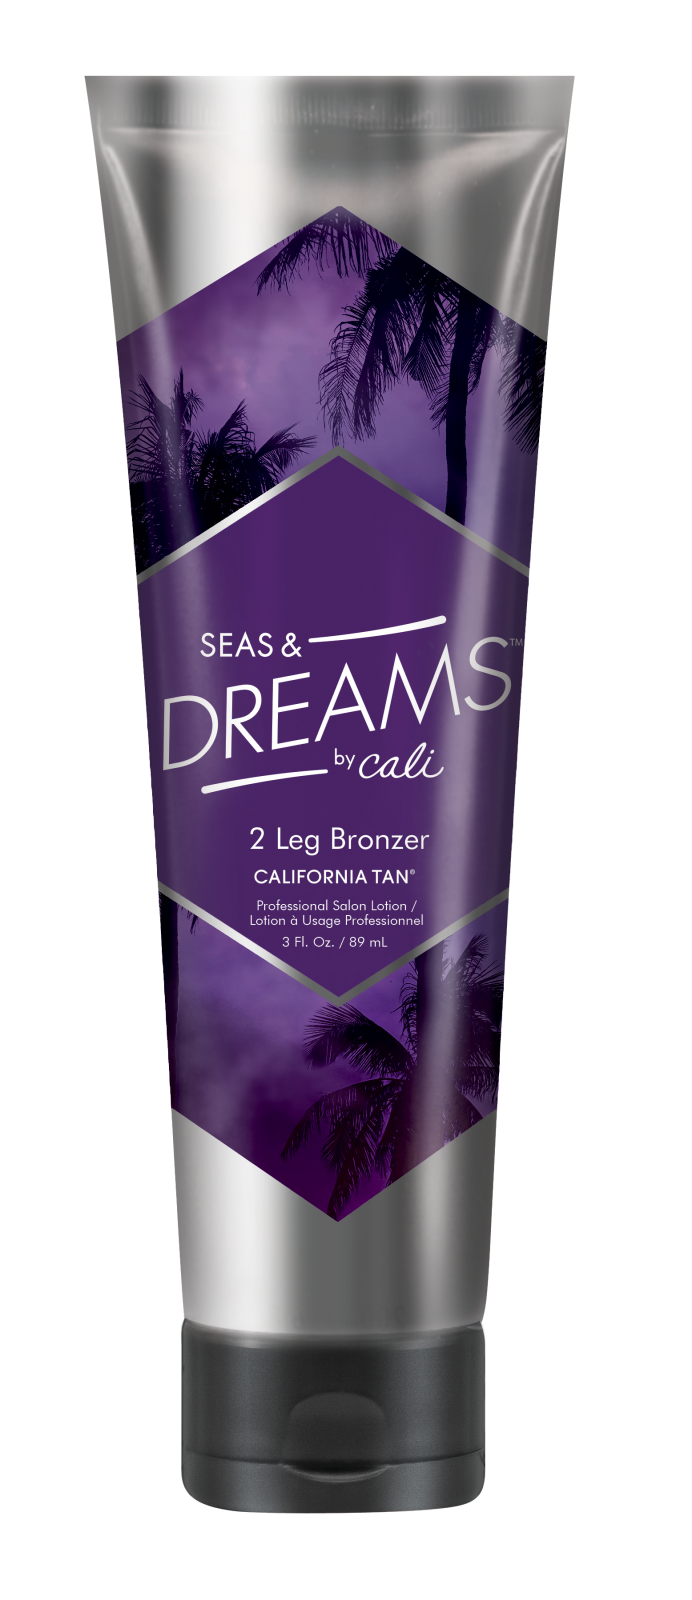 Seas & Dreams� by Cali Leg Bronzer Step 2